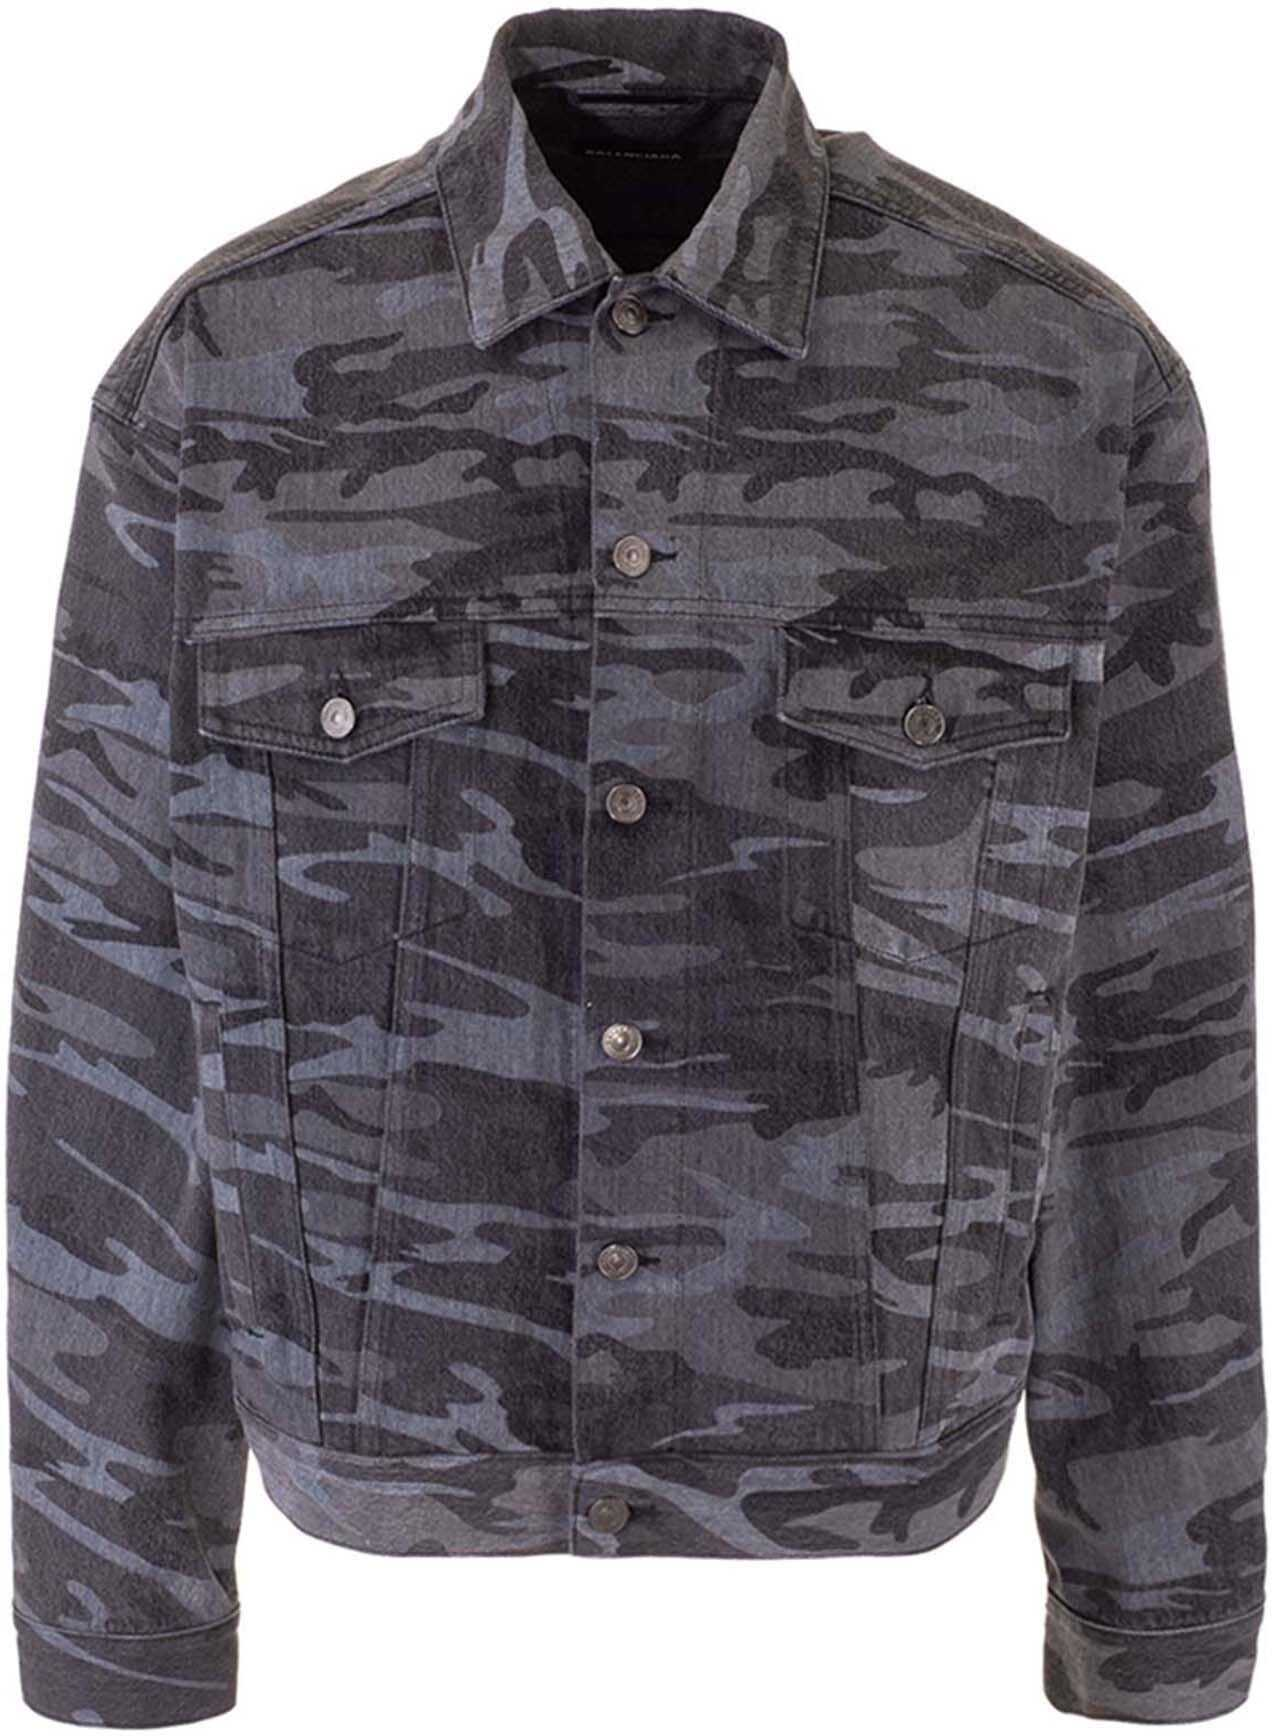 Balenciaga Camouflage Denim Jacket In Black Black imagine